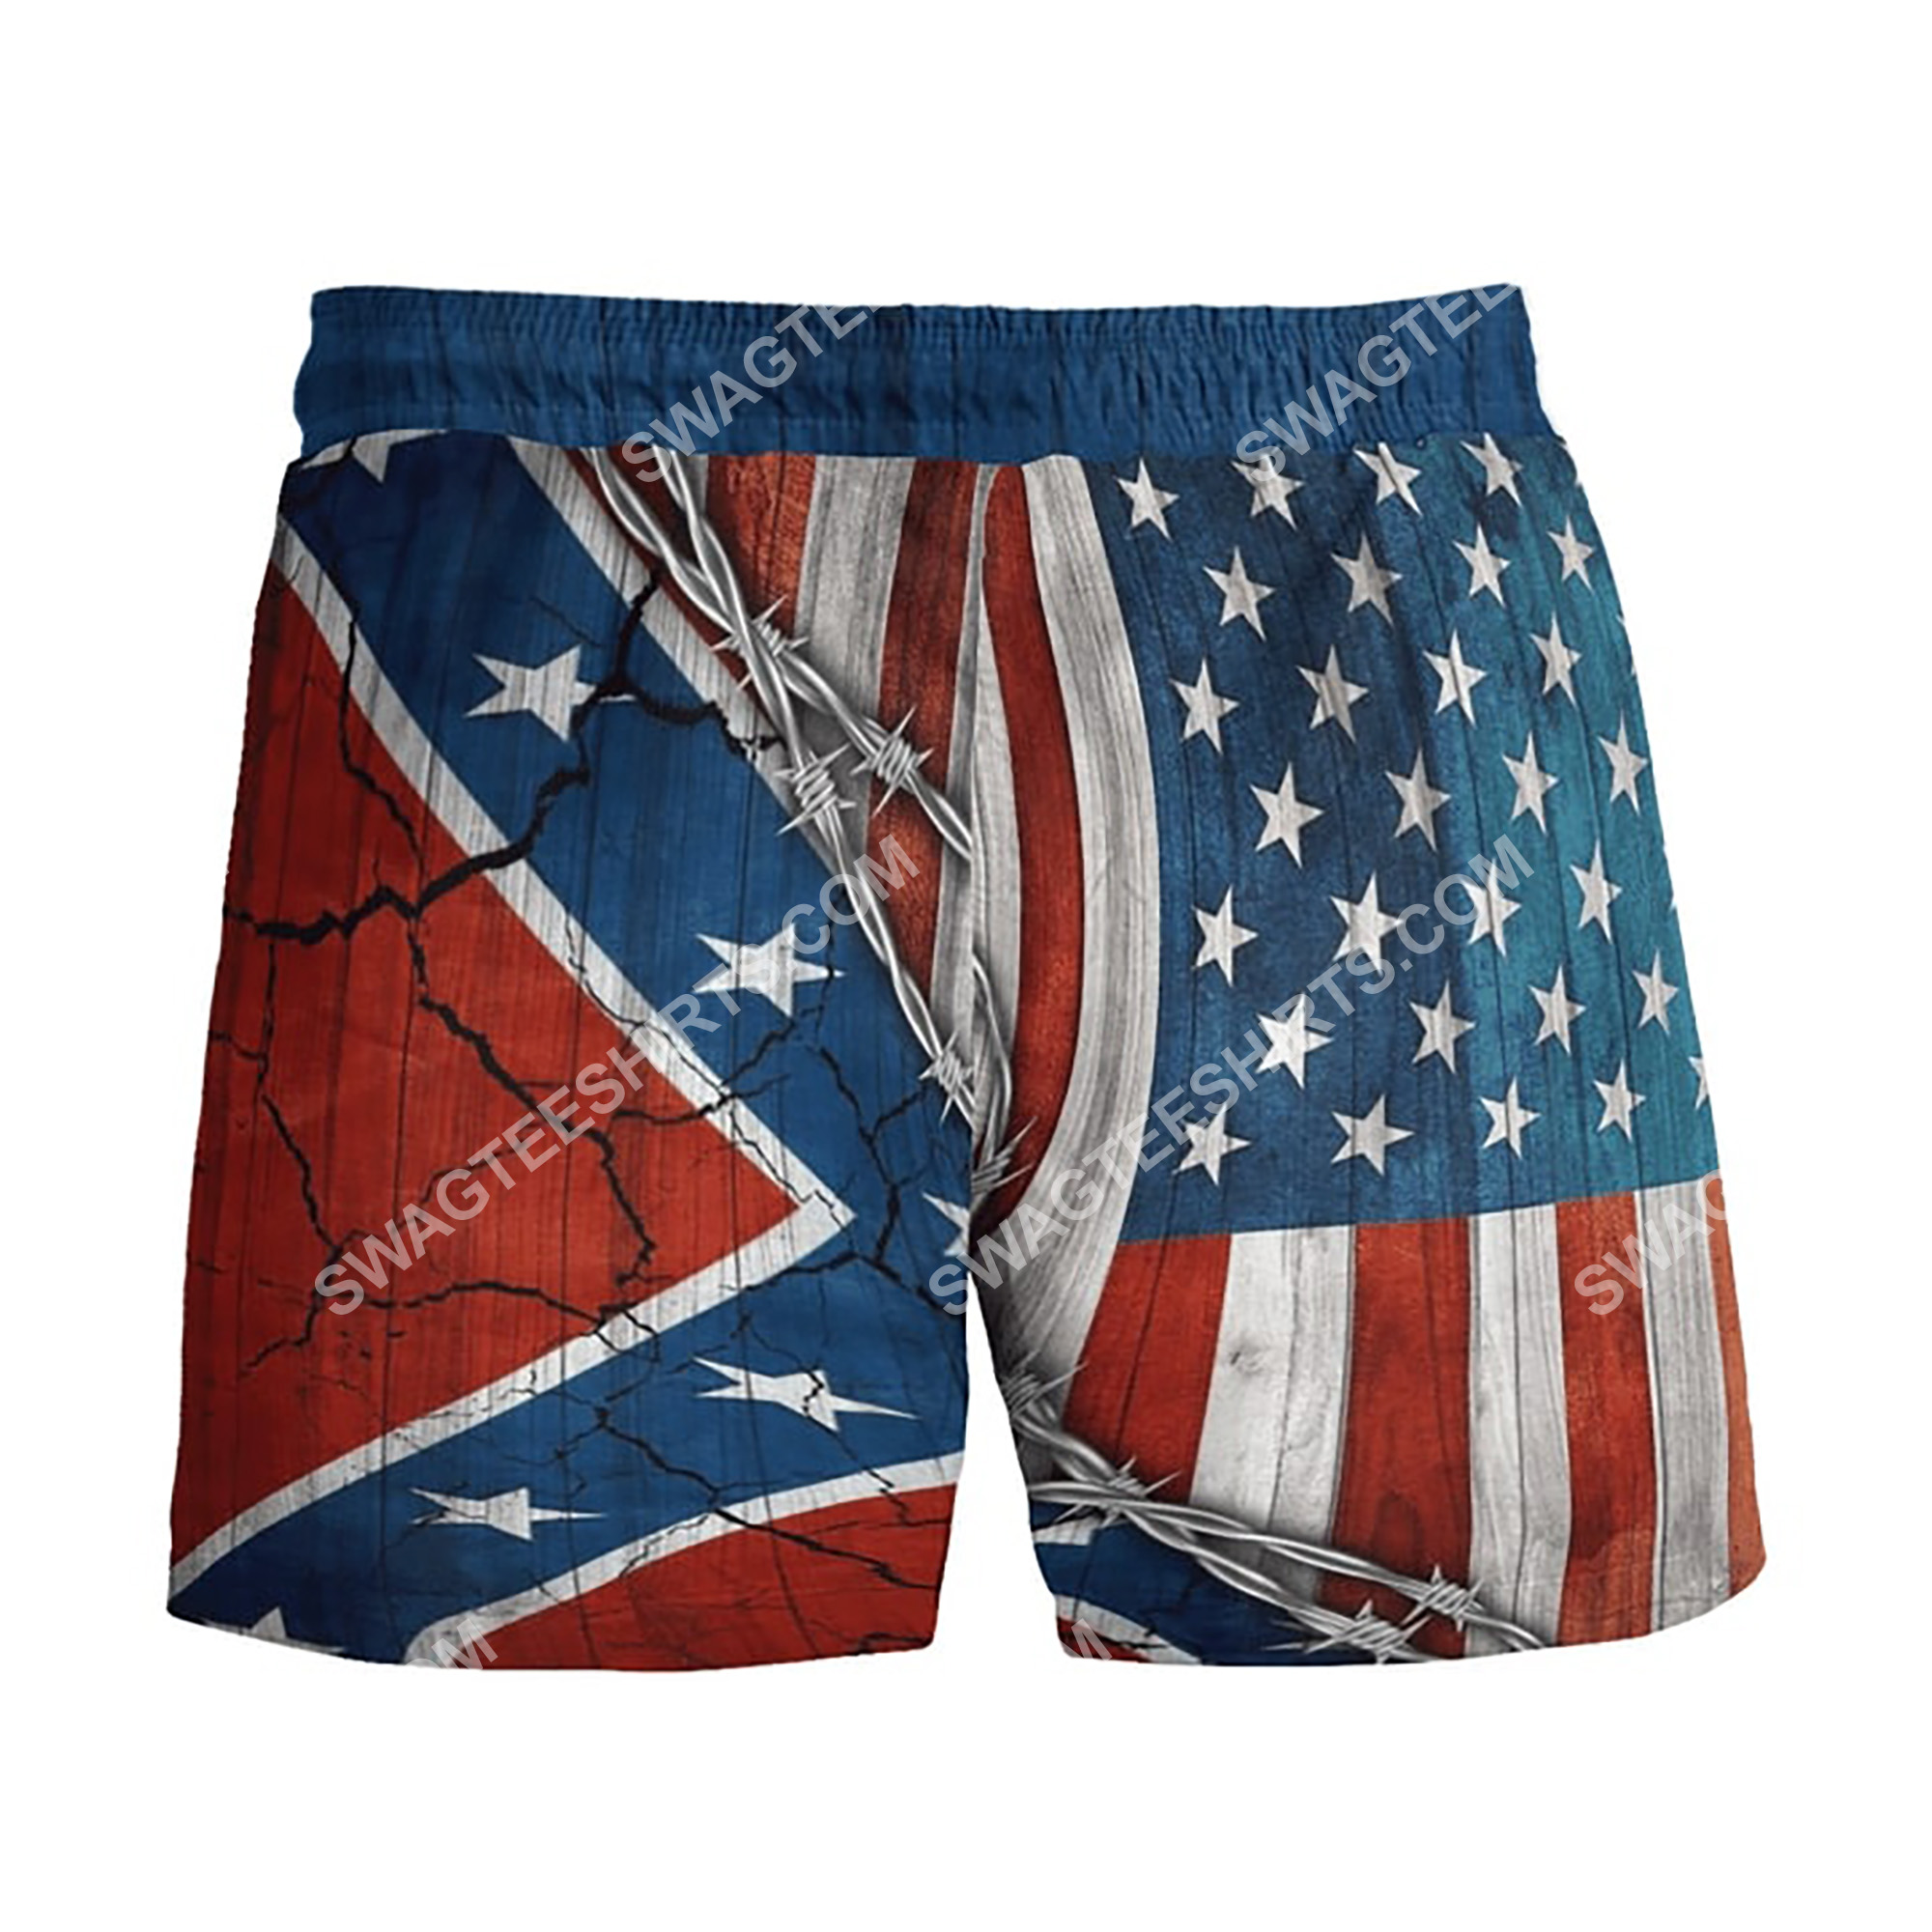 confederate states of america eagle beach shorts 3(1)